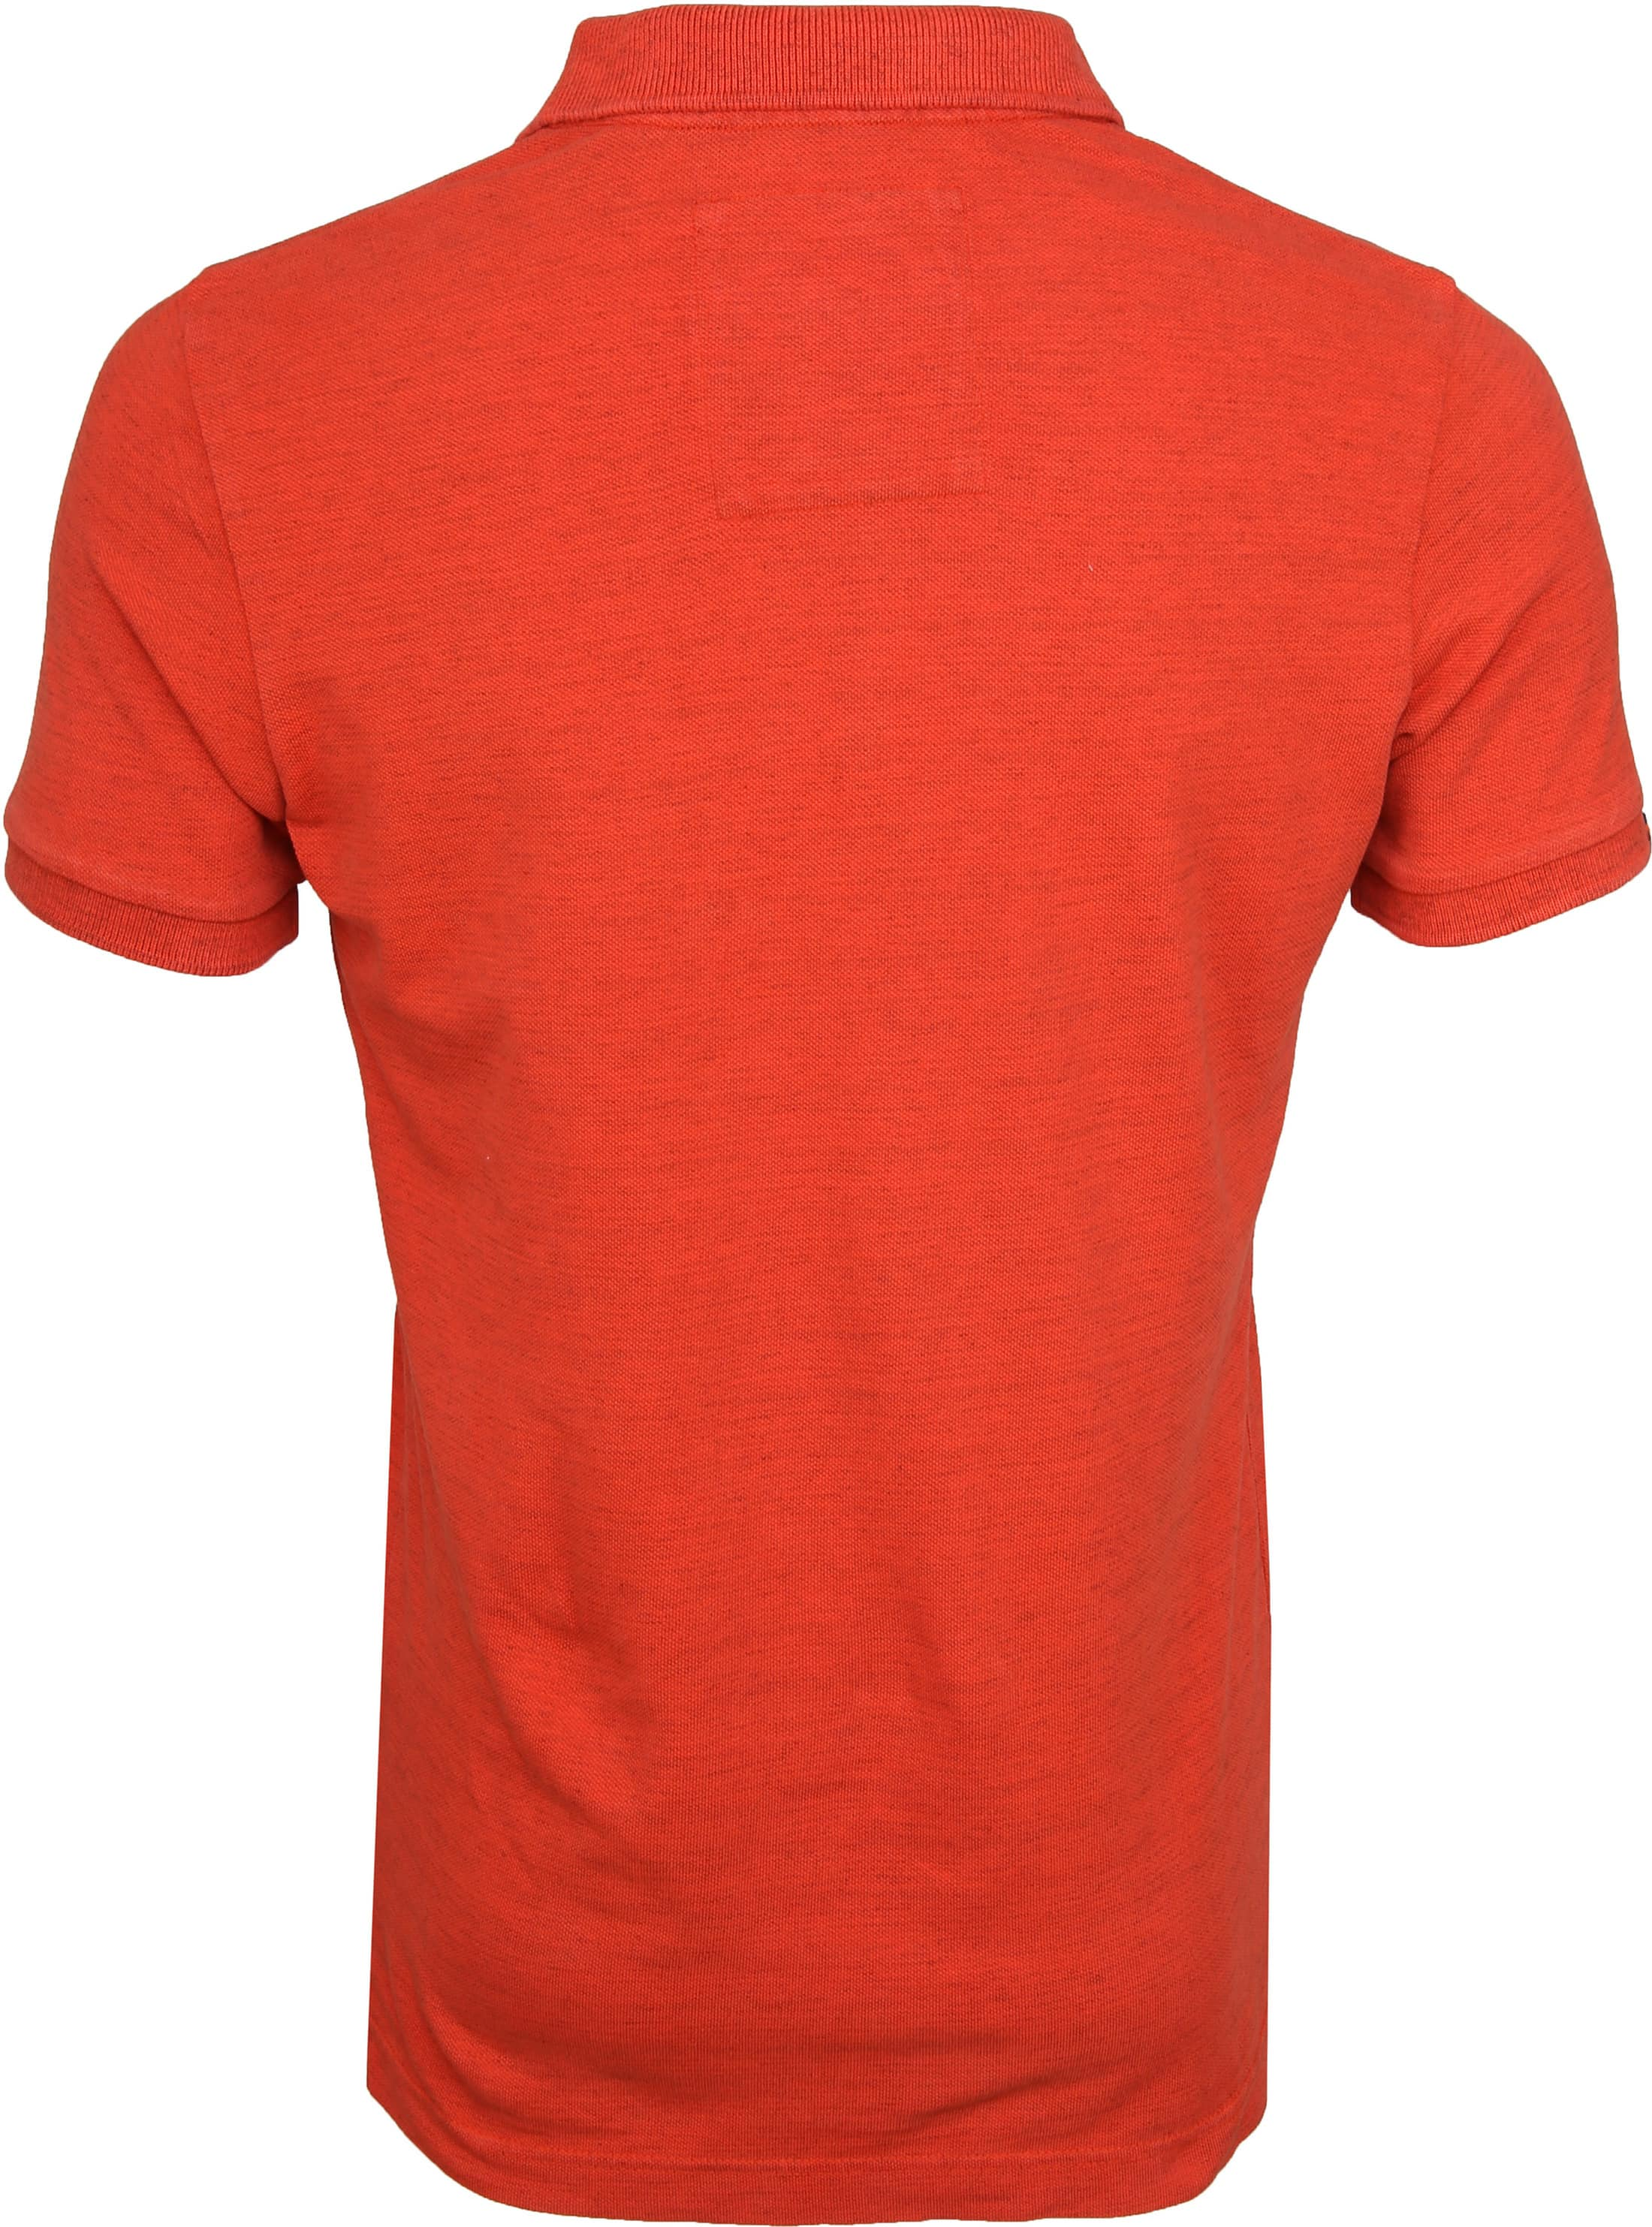 Superdry Premium Poloshirt Orange foto 4